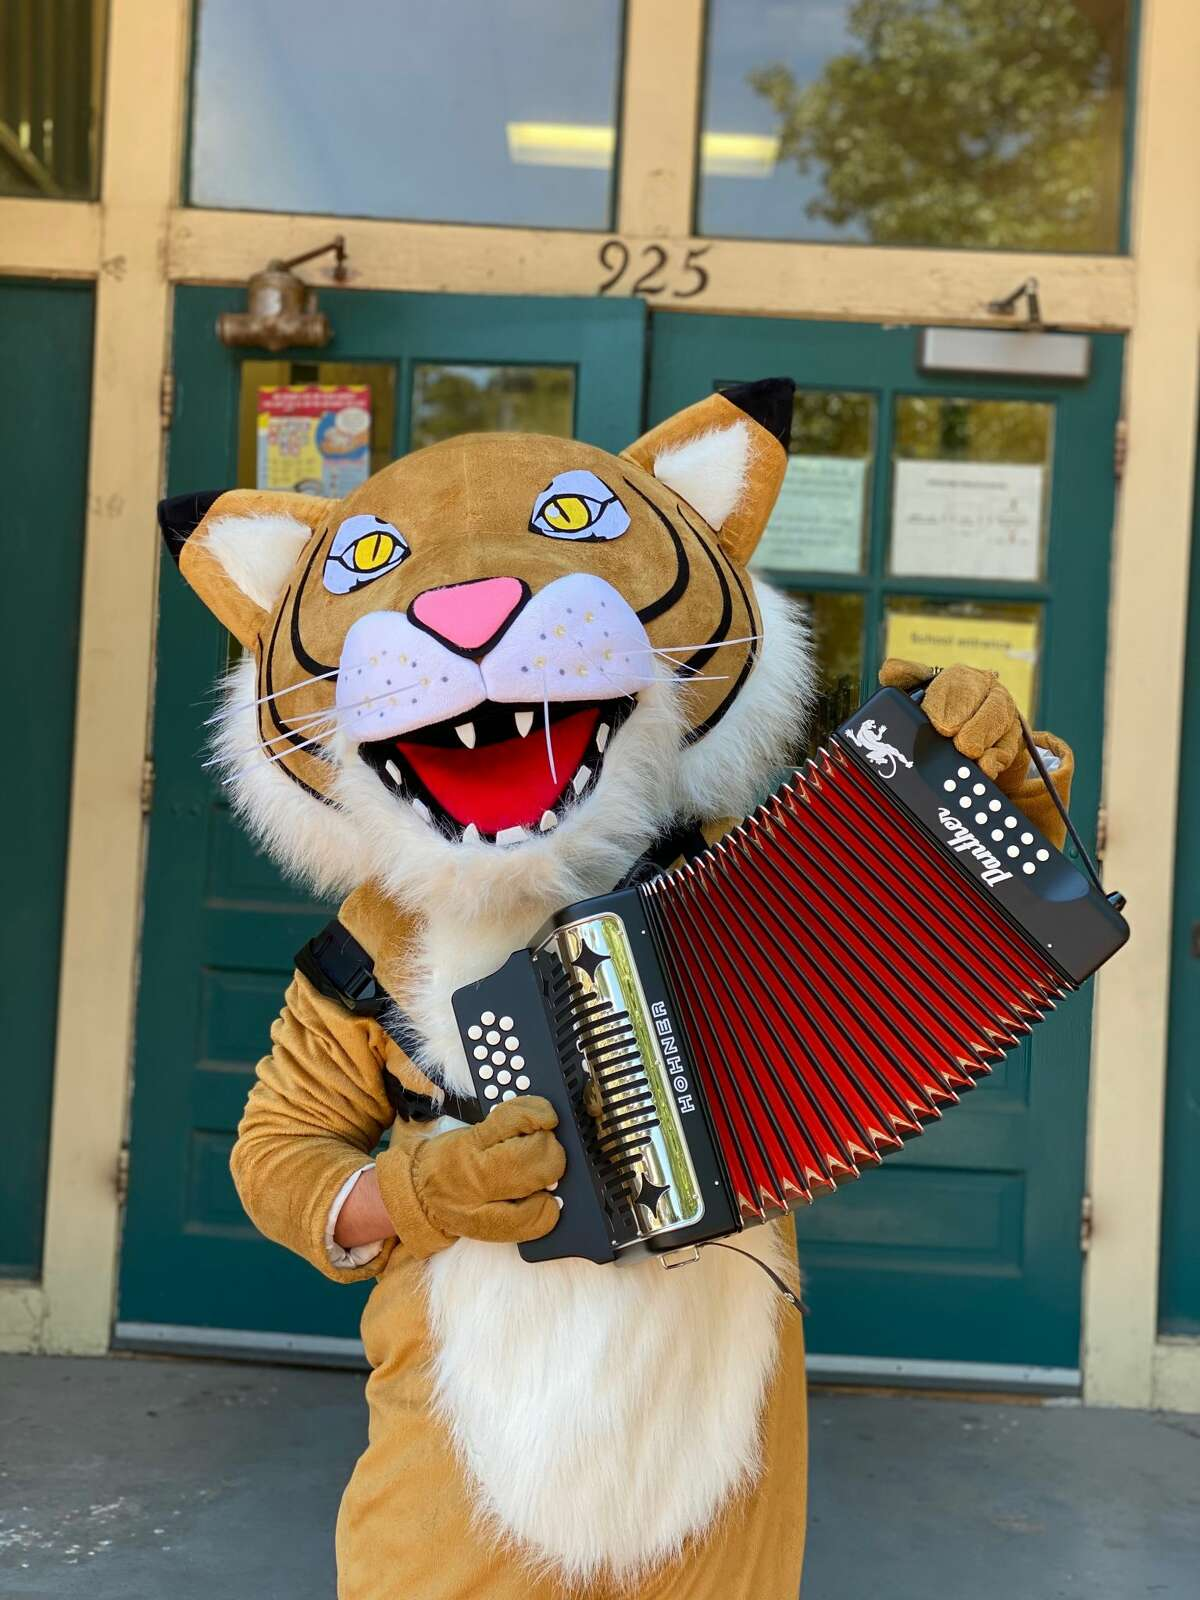 Accordionists to carry on conjunto music's future may get their start at Bonham Academy this fall.